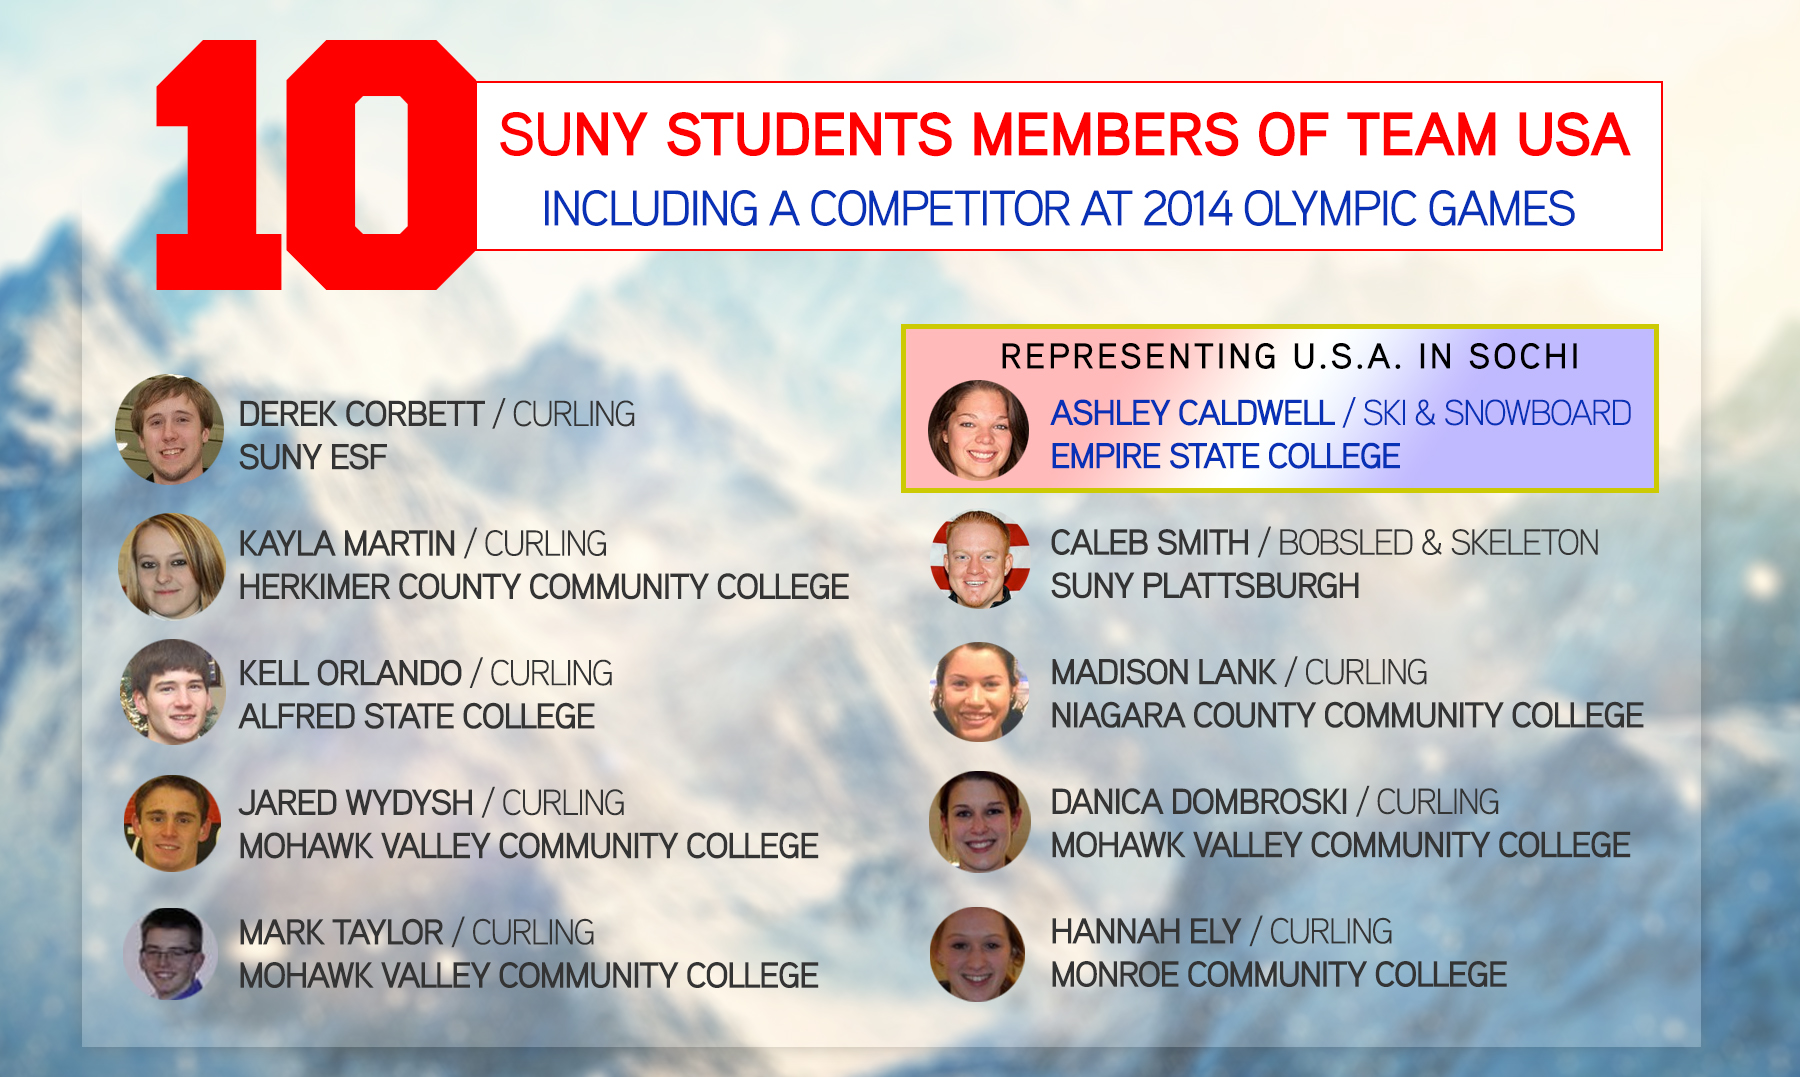 SUNY students on Team USA, including Ashley Caldwell of Empire State College, a competitor at the 2014 winter olympic games.